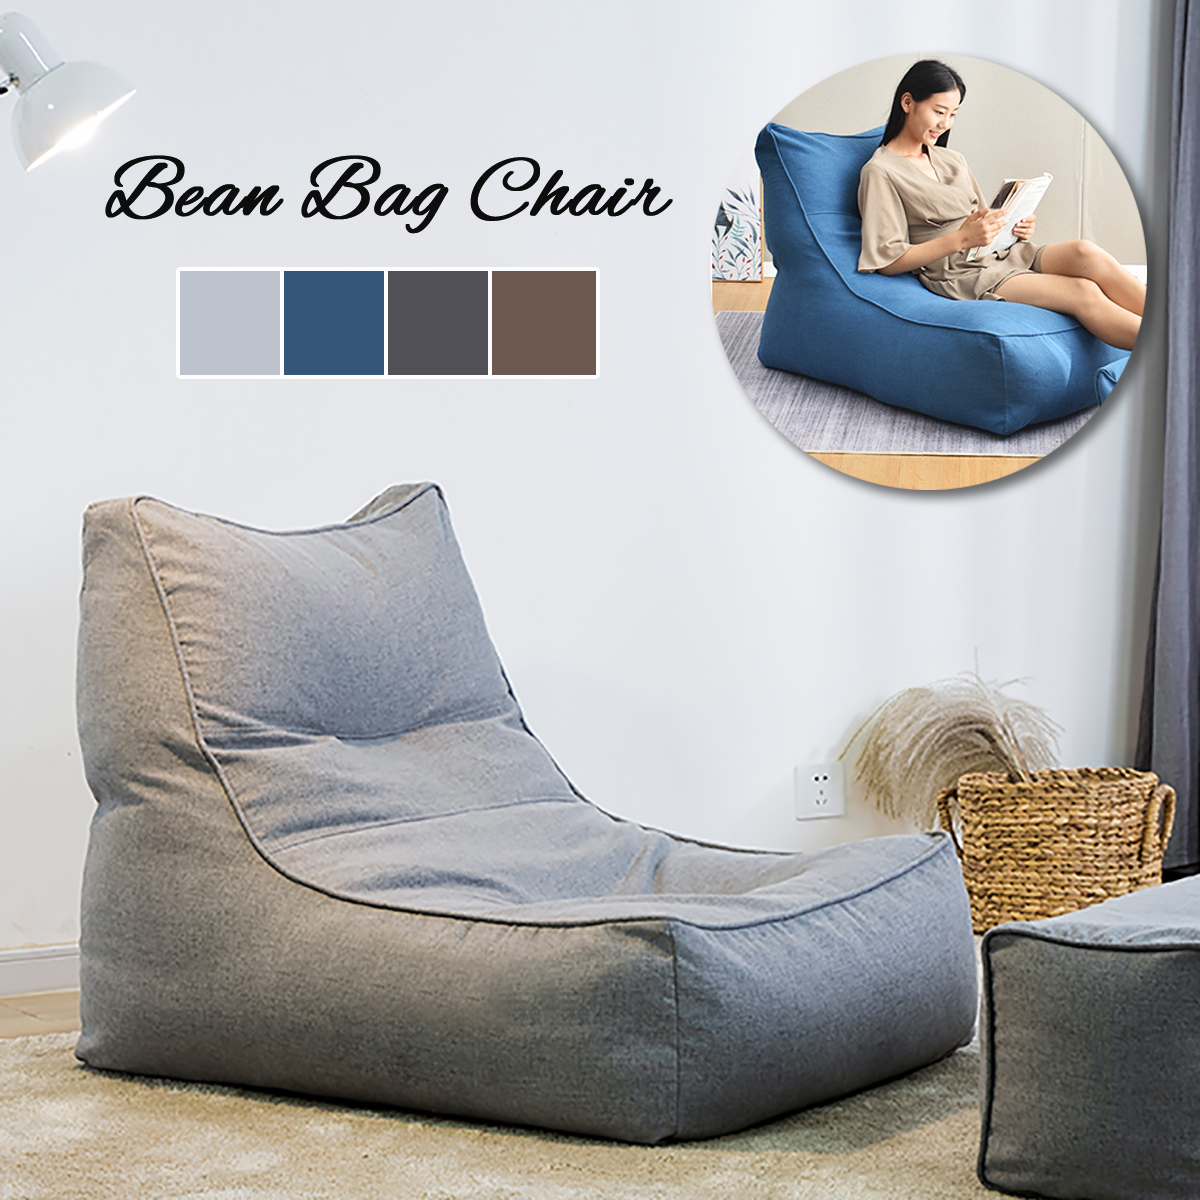 Admirable Details About Large Bean Bag Chair Bed Lounger Highback Adult Kids Gaming Sofa Slipcover Caraccident5 Cool Chair Designs And Ideas Caraccident5Info